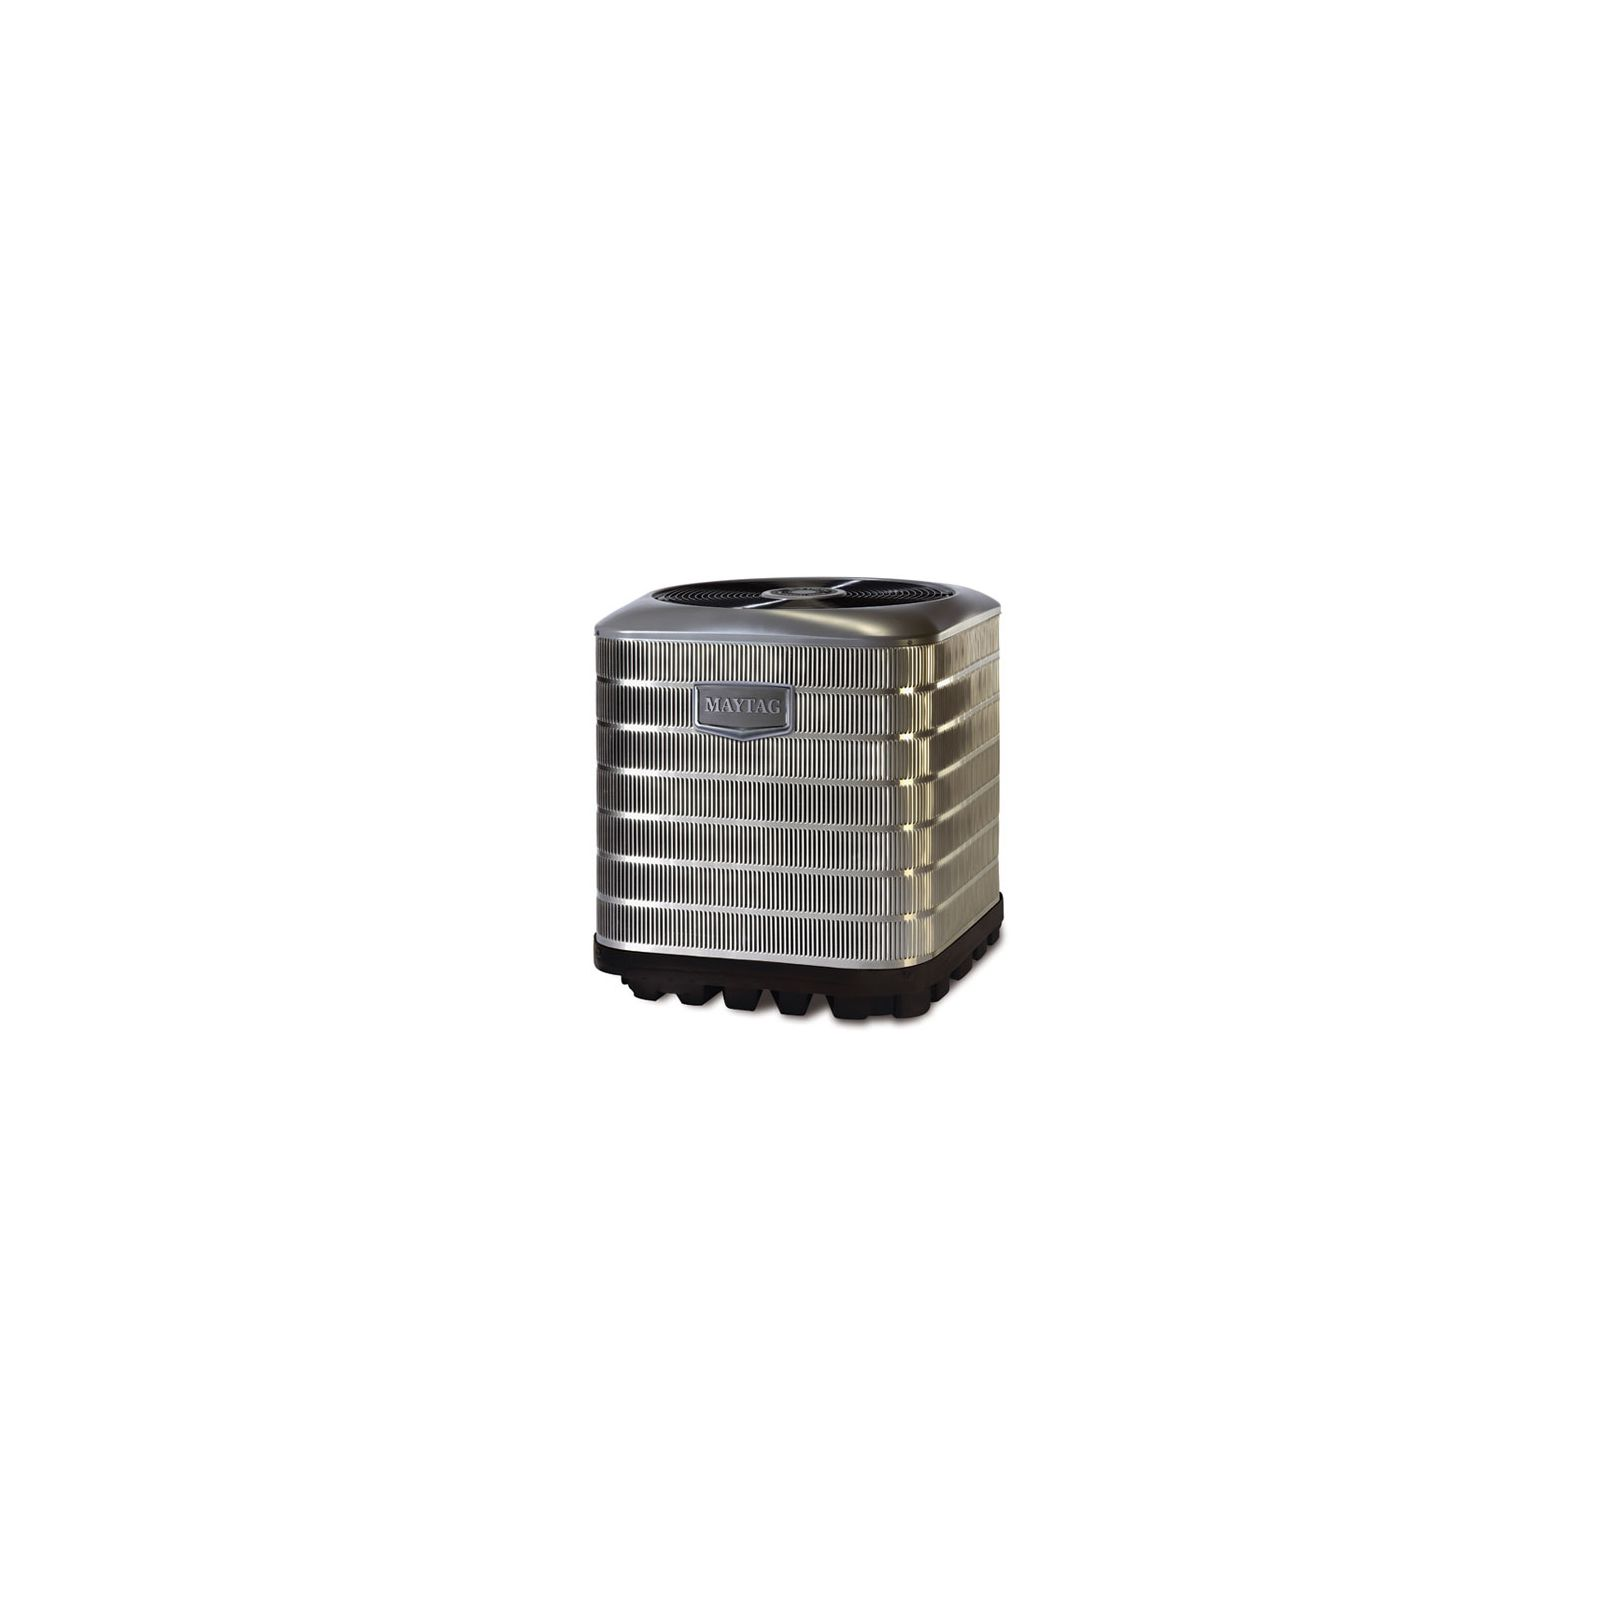 Maytag 920271P - PSH4BI048K - 4 Ton 23 SEER M1200 iQ Drive Extra High Efficiency Heat Pump, R410A